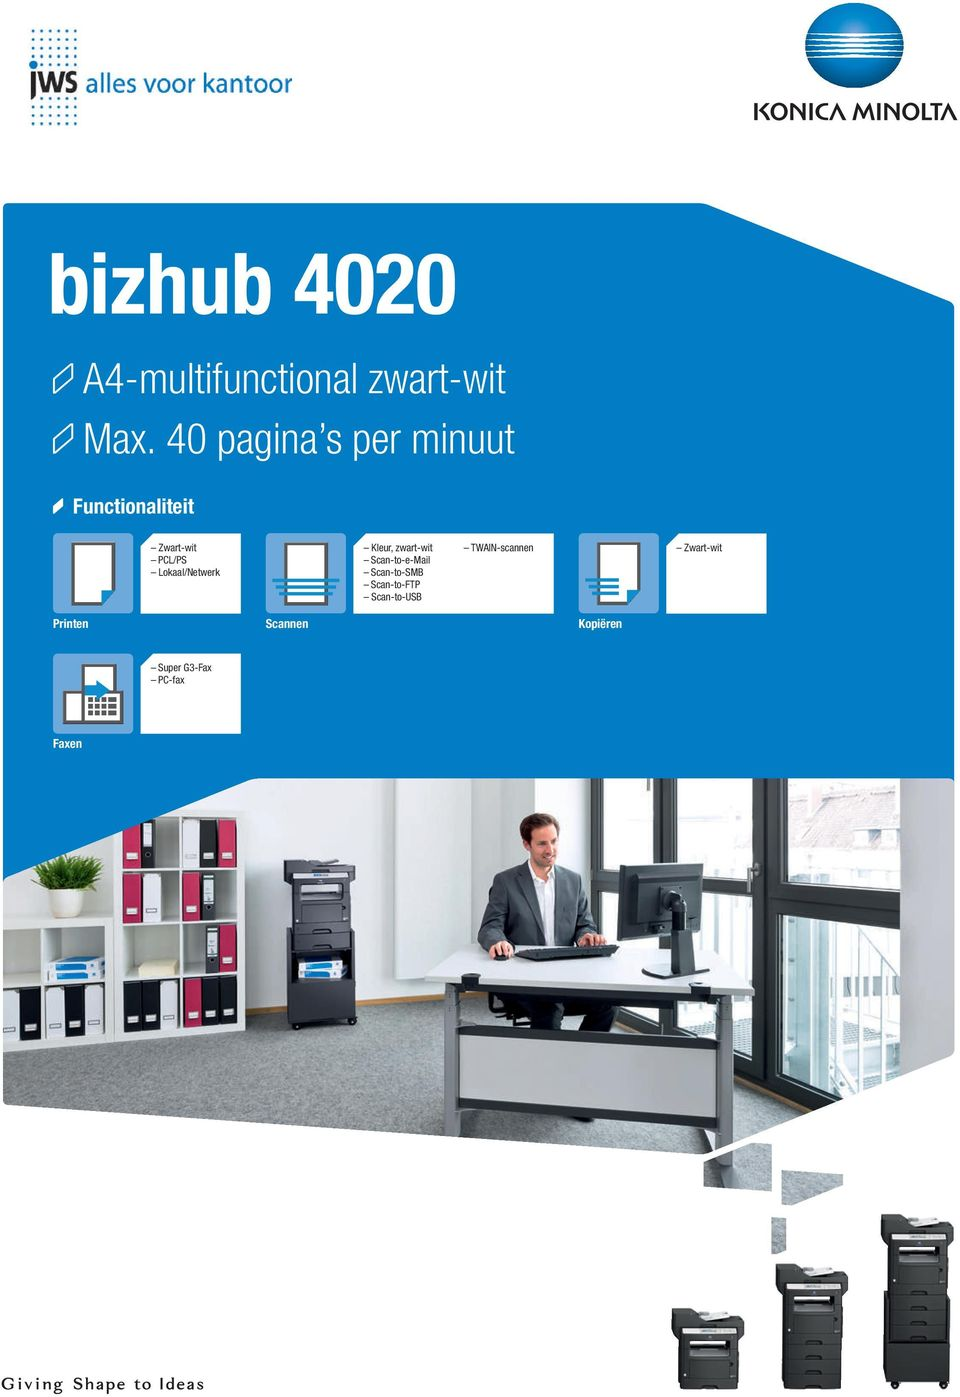 Lokaal/Netwerk Kleur, zwart-wit Scan-to-e-Mail Scan-to-SMB